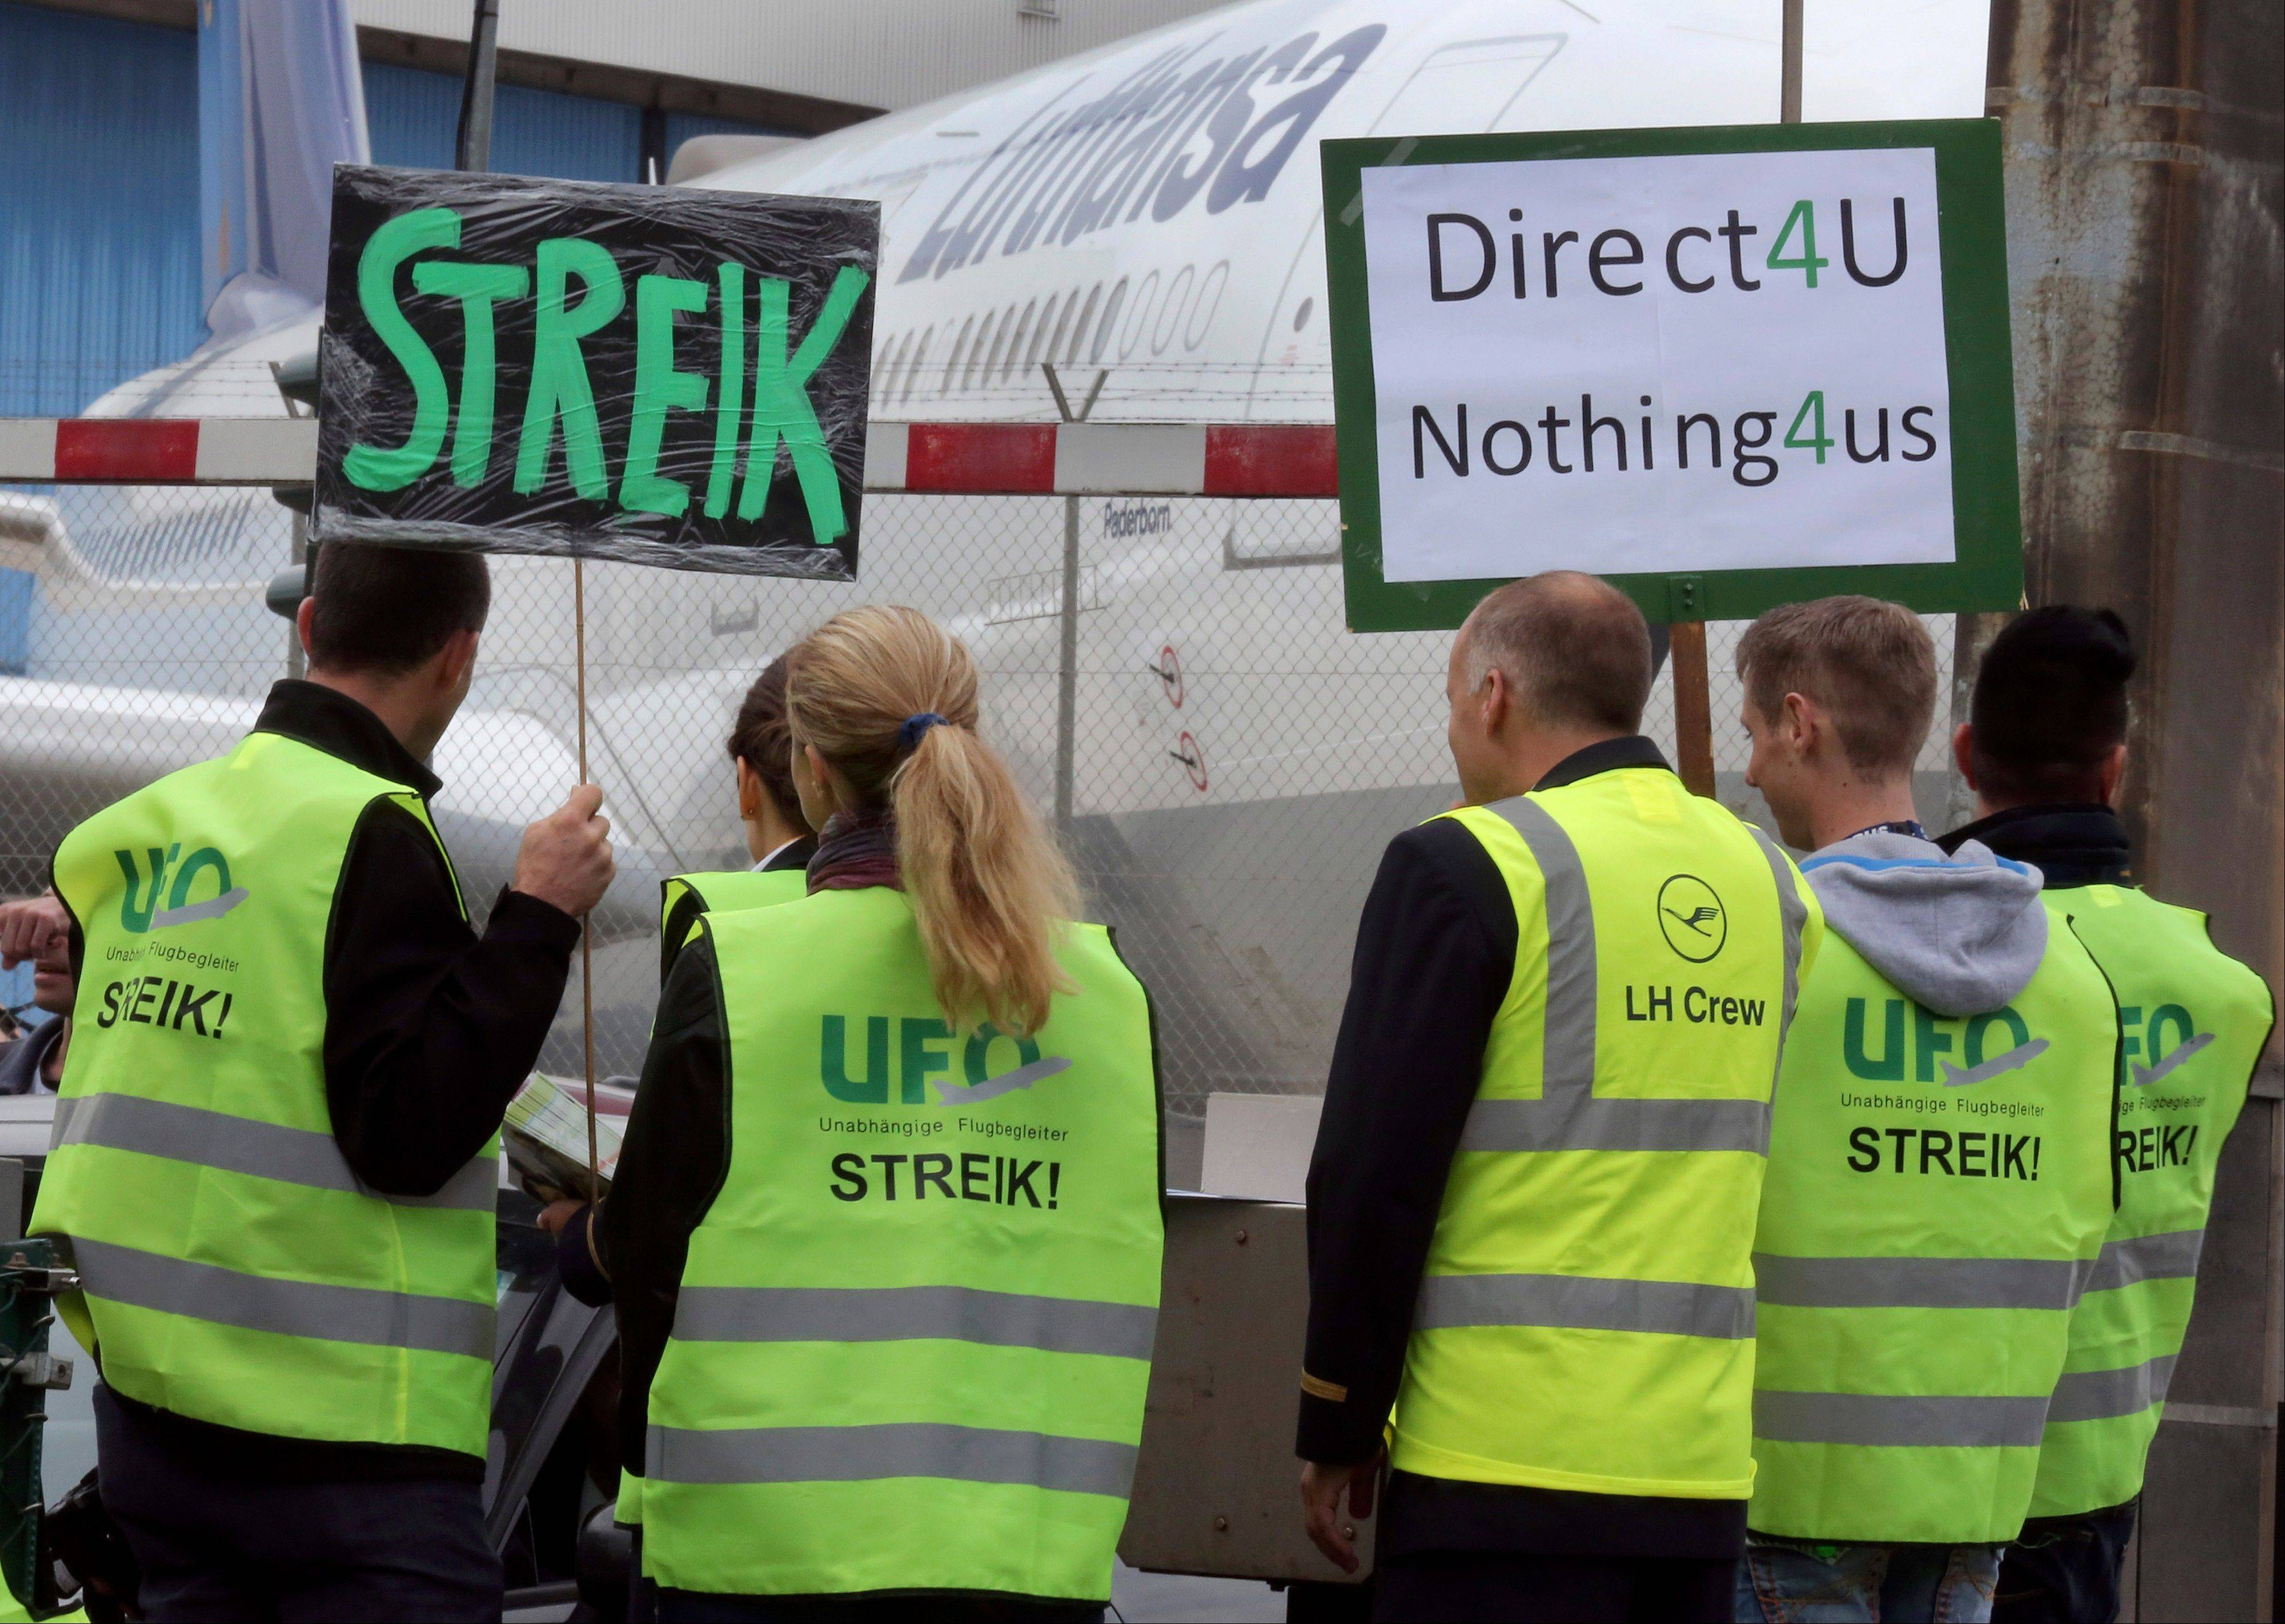 Demonstrators hold placards as they protest in front of a Deutsche Lufthansa AG aircraft at Frankfurt's Rhein-Main airport in Frankfurt, Germany, on Friday, August 31, 2012. Deutsche Lufthansa AG, Europe's second-largest airline, dropped more than half its flights today at Frankfurt airport as flight attendants staged an eight-hour strike at the carrier's main hub in a wage dispute.